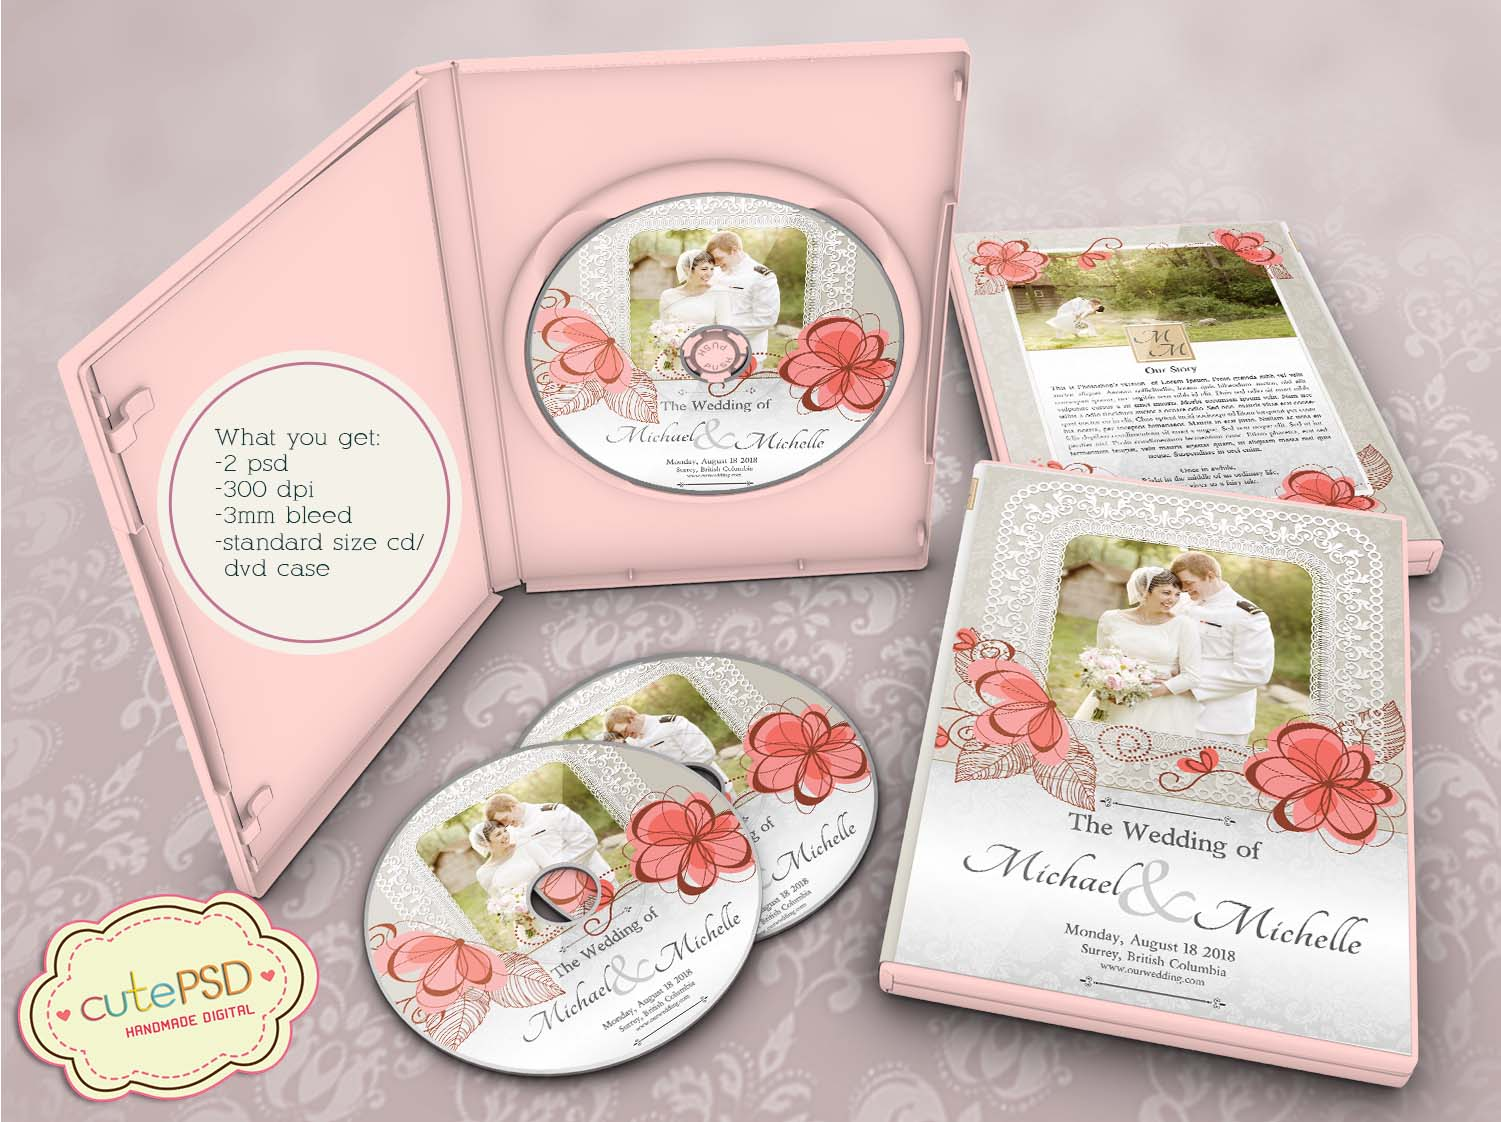 Wedding dvd case floral photoshop templates cpz086 cute psd wedding dvd case floral photoshop templates cpz086 pronofoot35fo Gallery